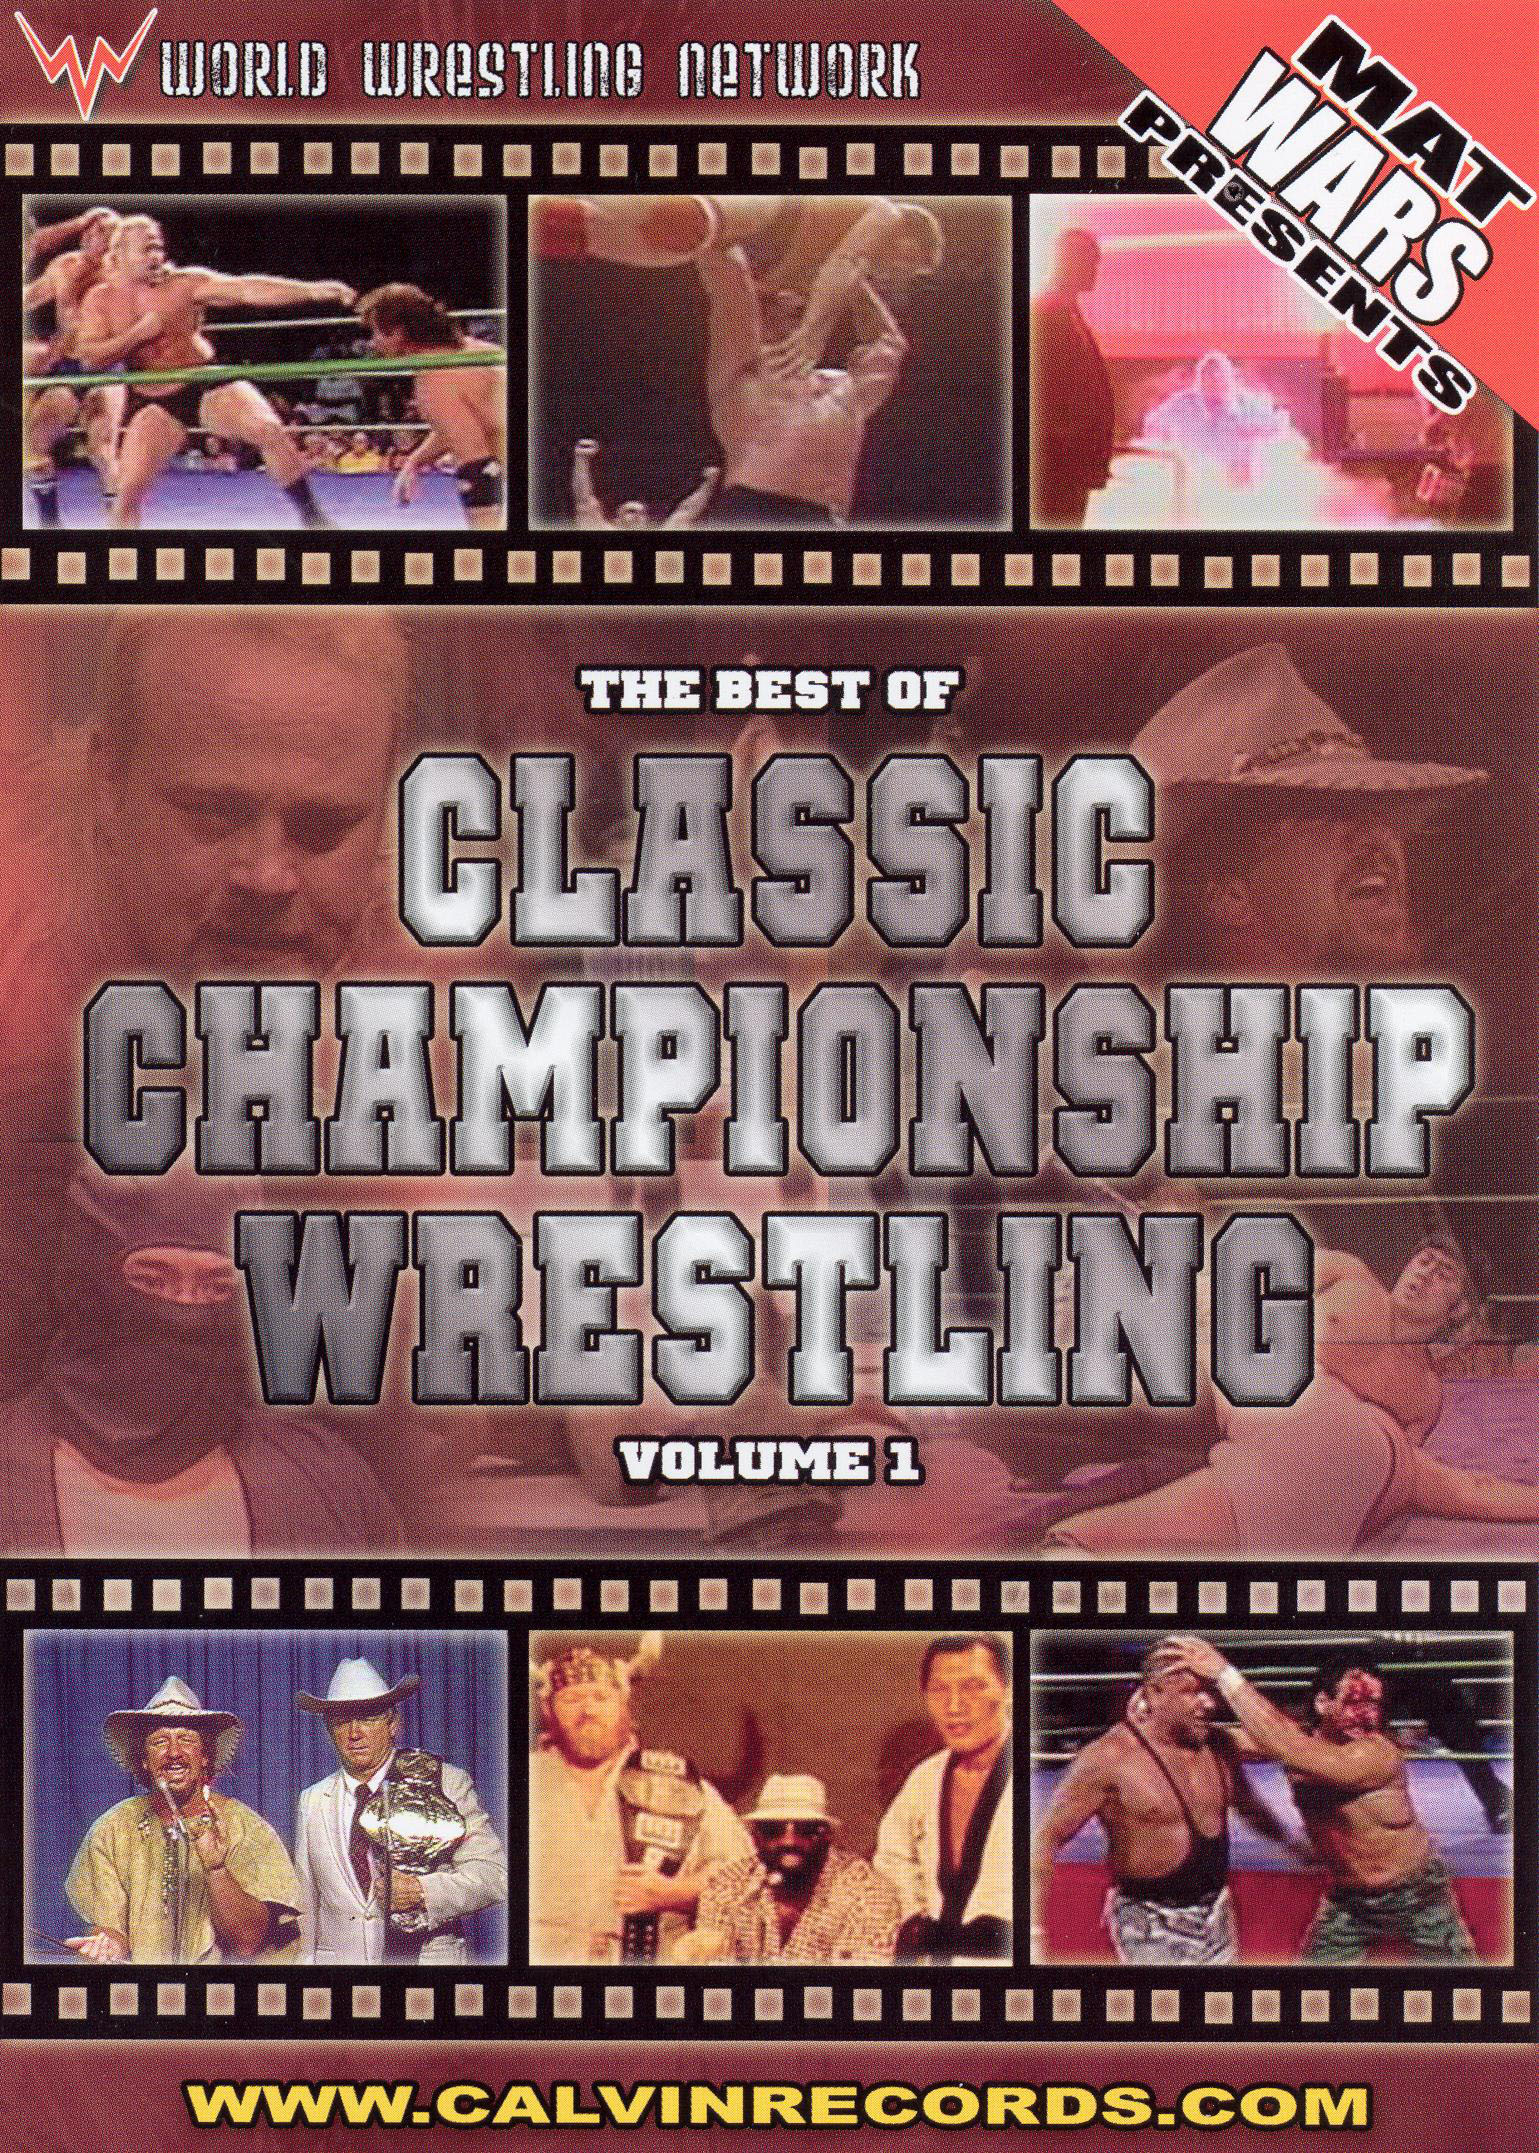 Mat Wars Presents: Best of Classic Championship Wrestling